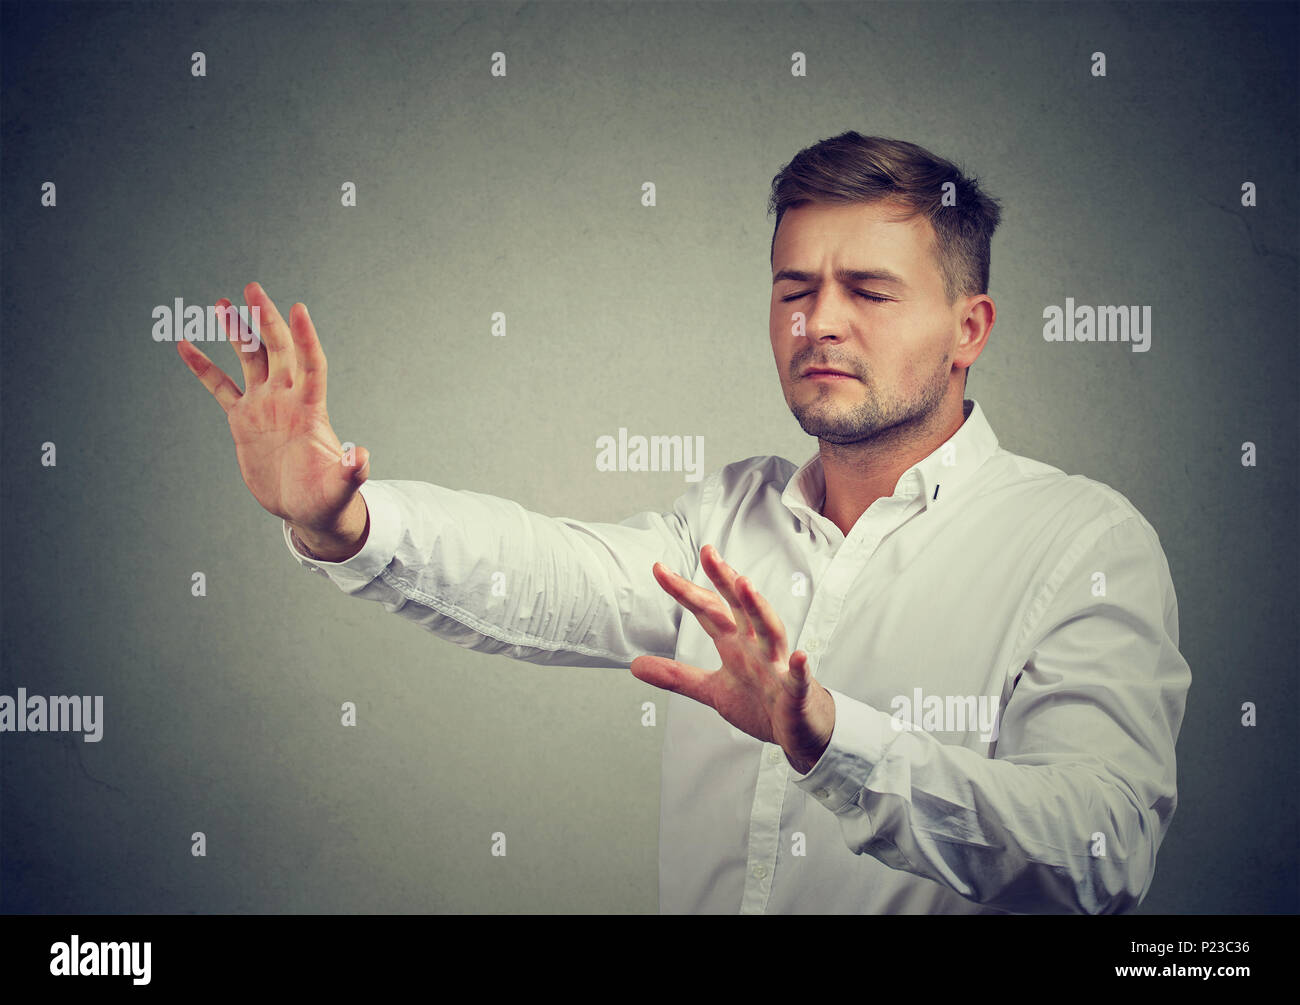 Young man with eyes closed pushing hands forward walking in darkness with help of intuition. - Stock Image